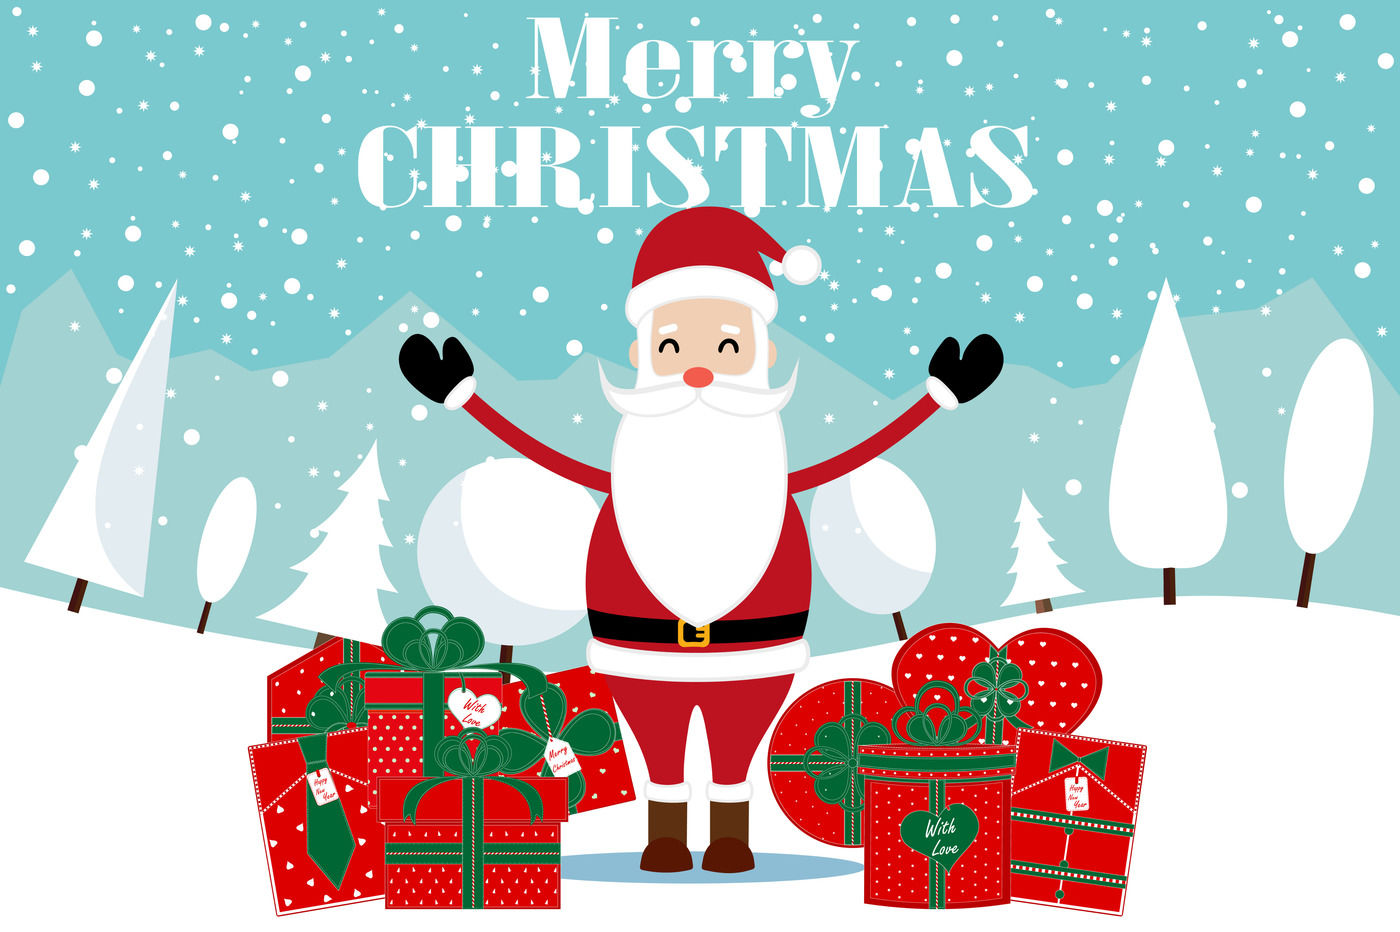 Merry Christmas And Happy New Year Santa By Sunshine Shop